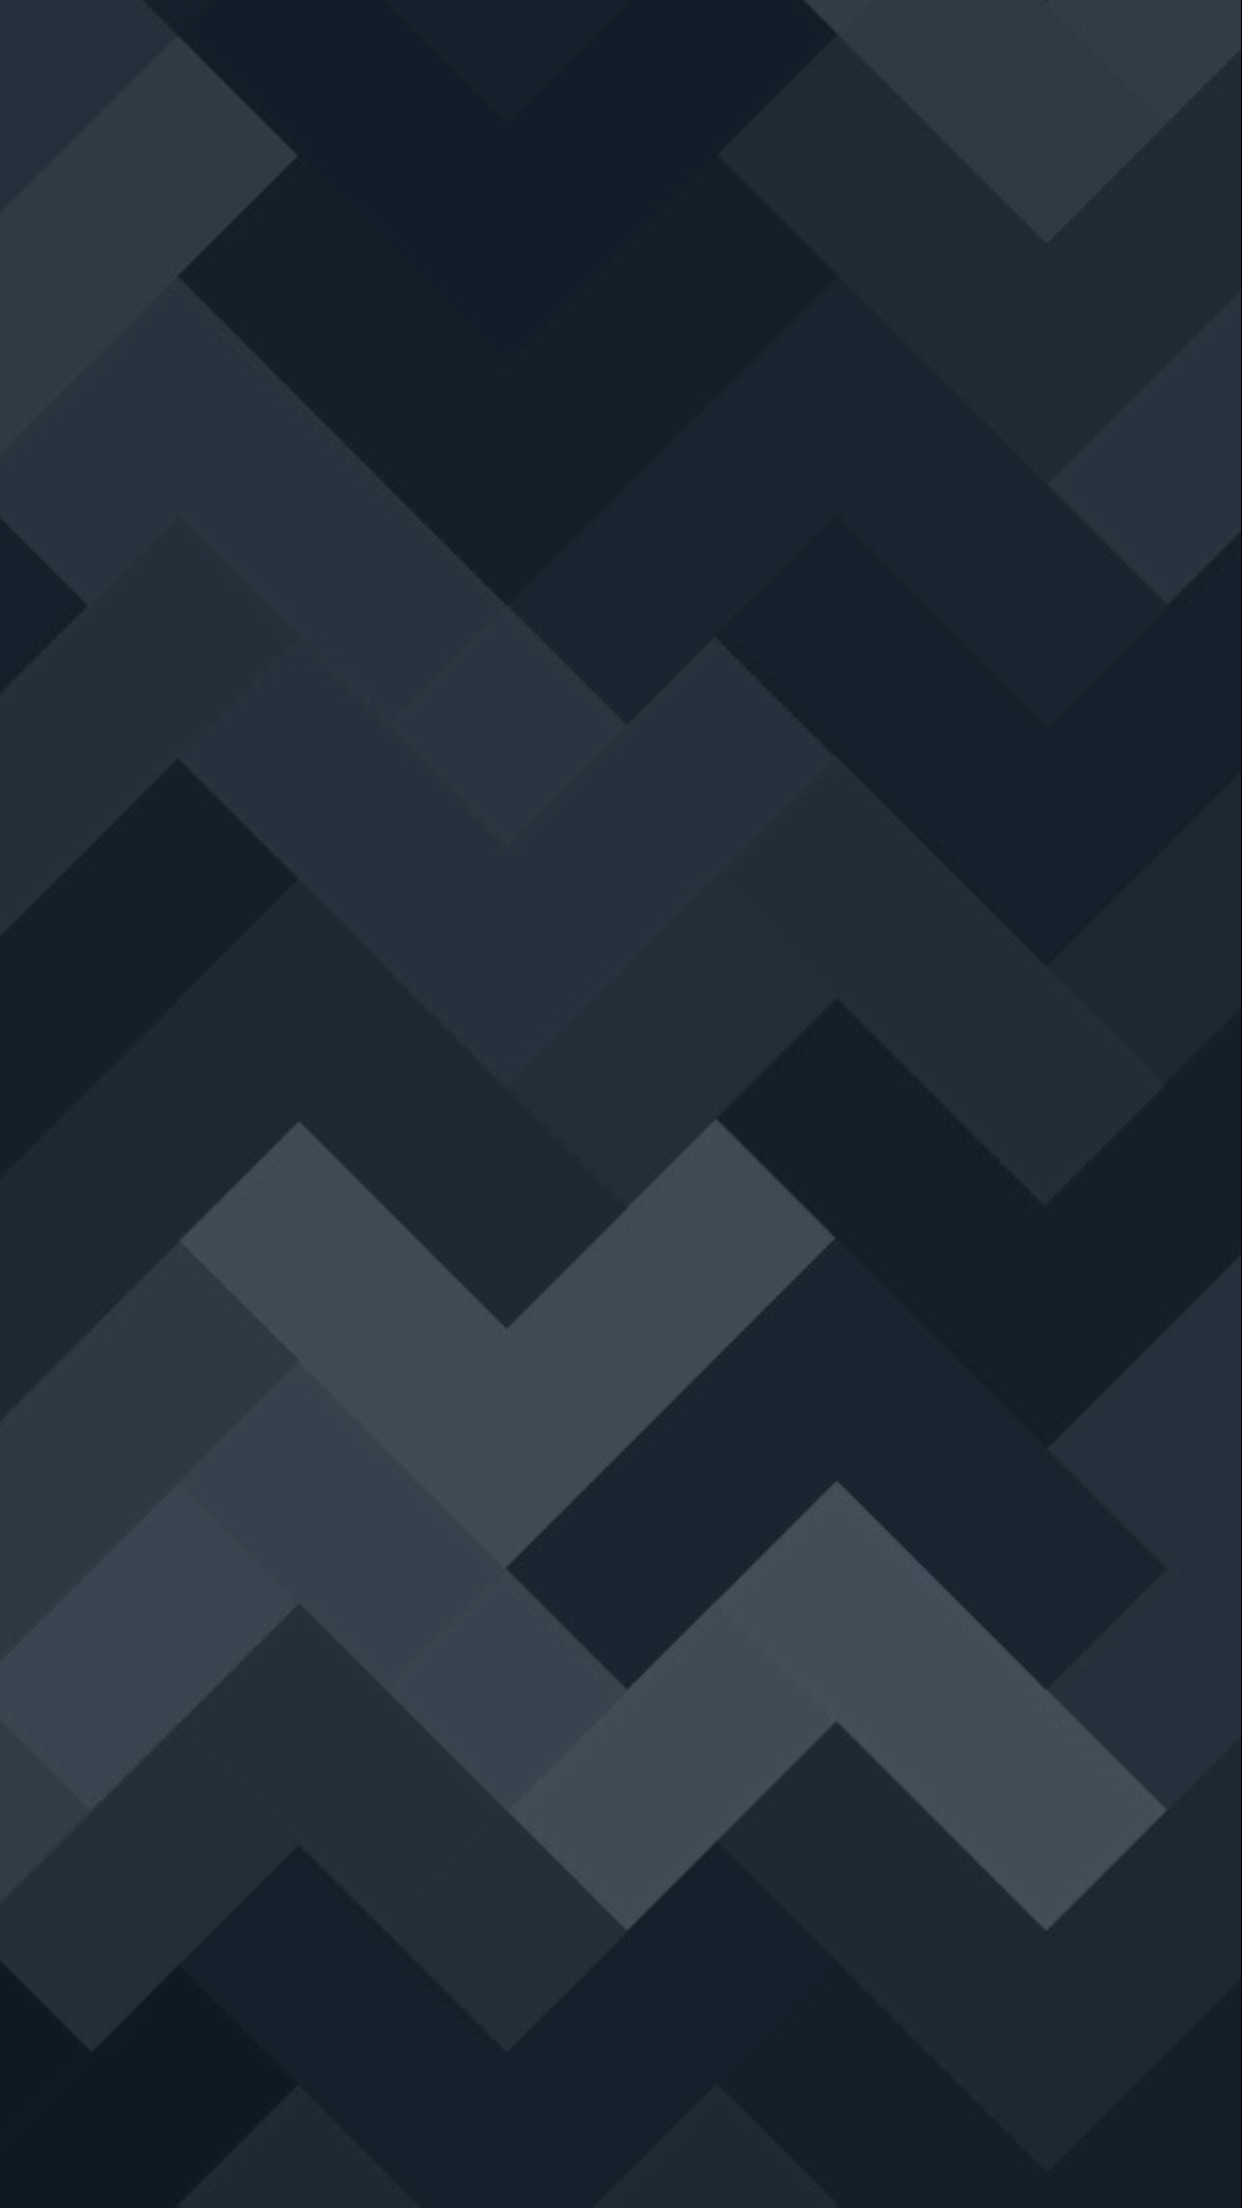 1242x2208 Shapes Black Wallpaper iPhone 6 Plus